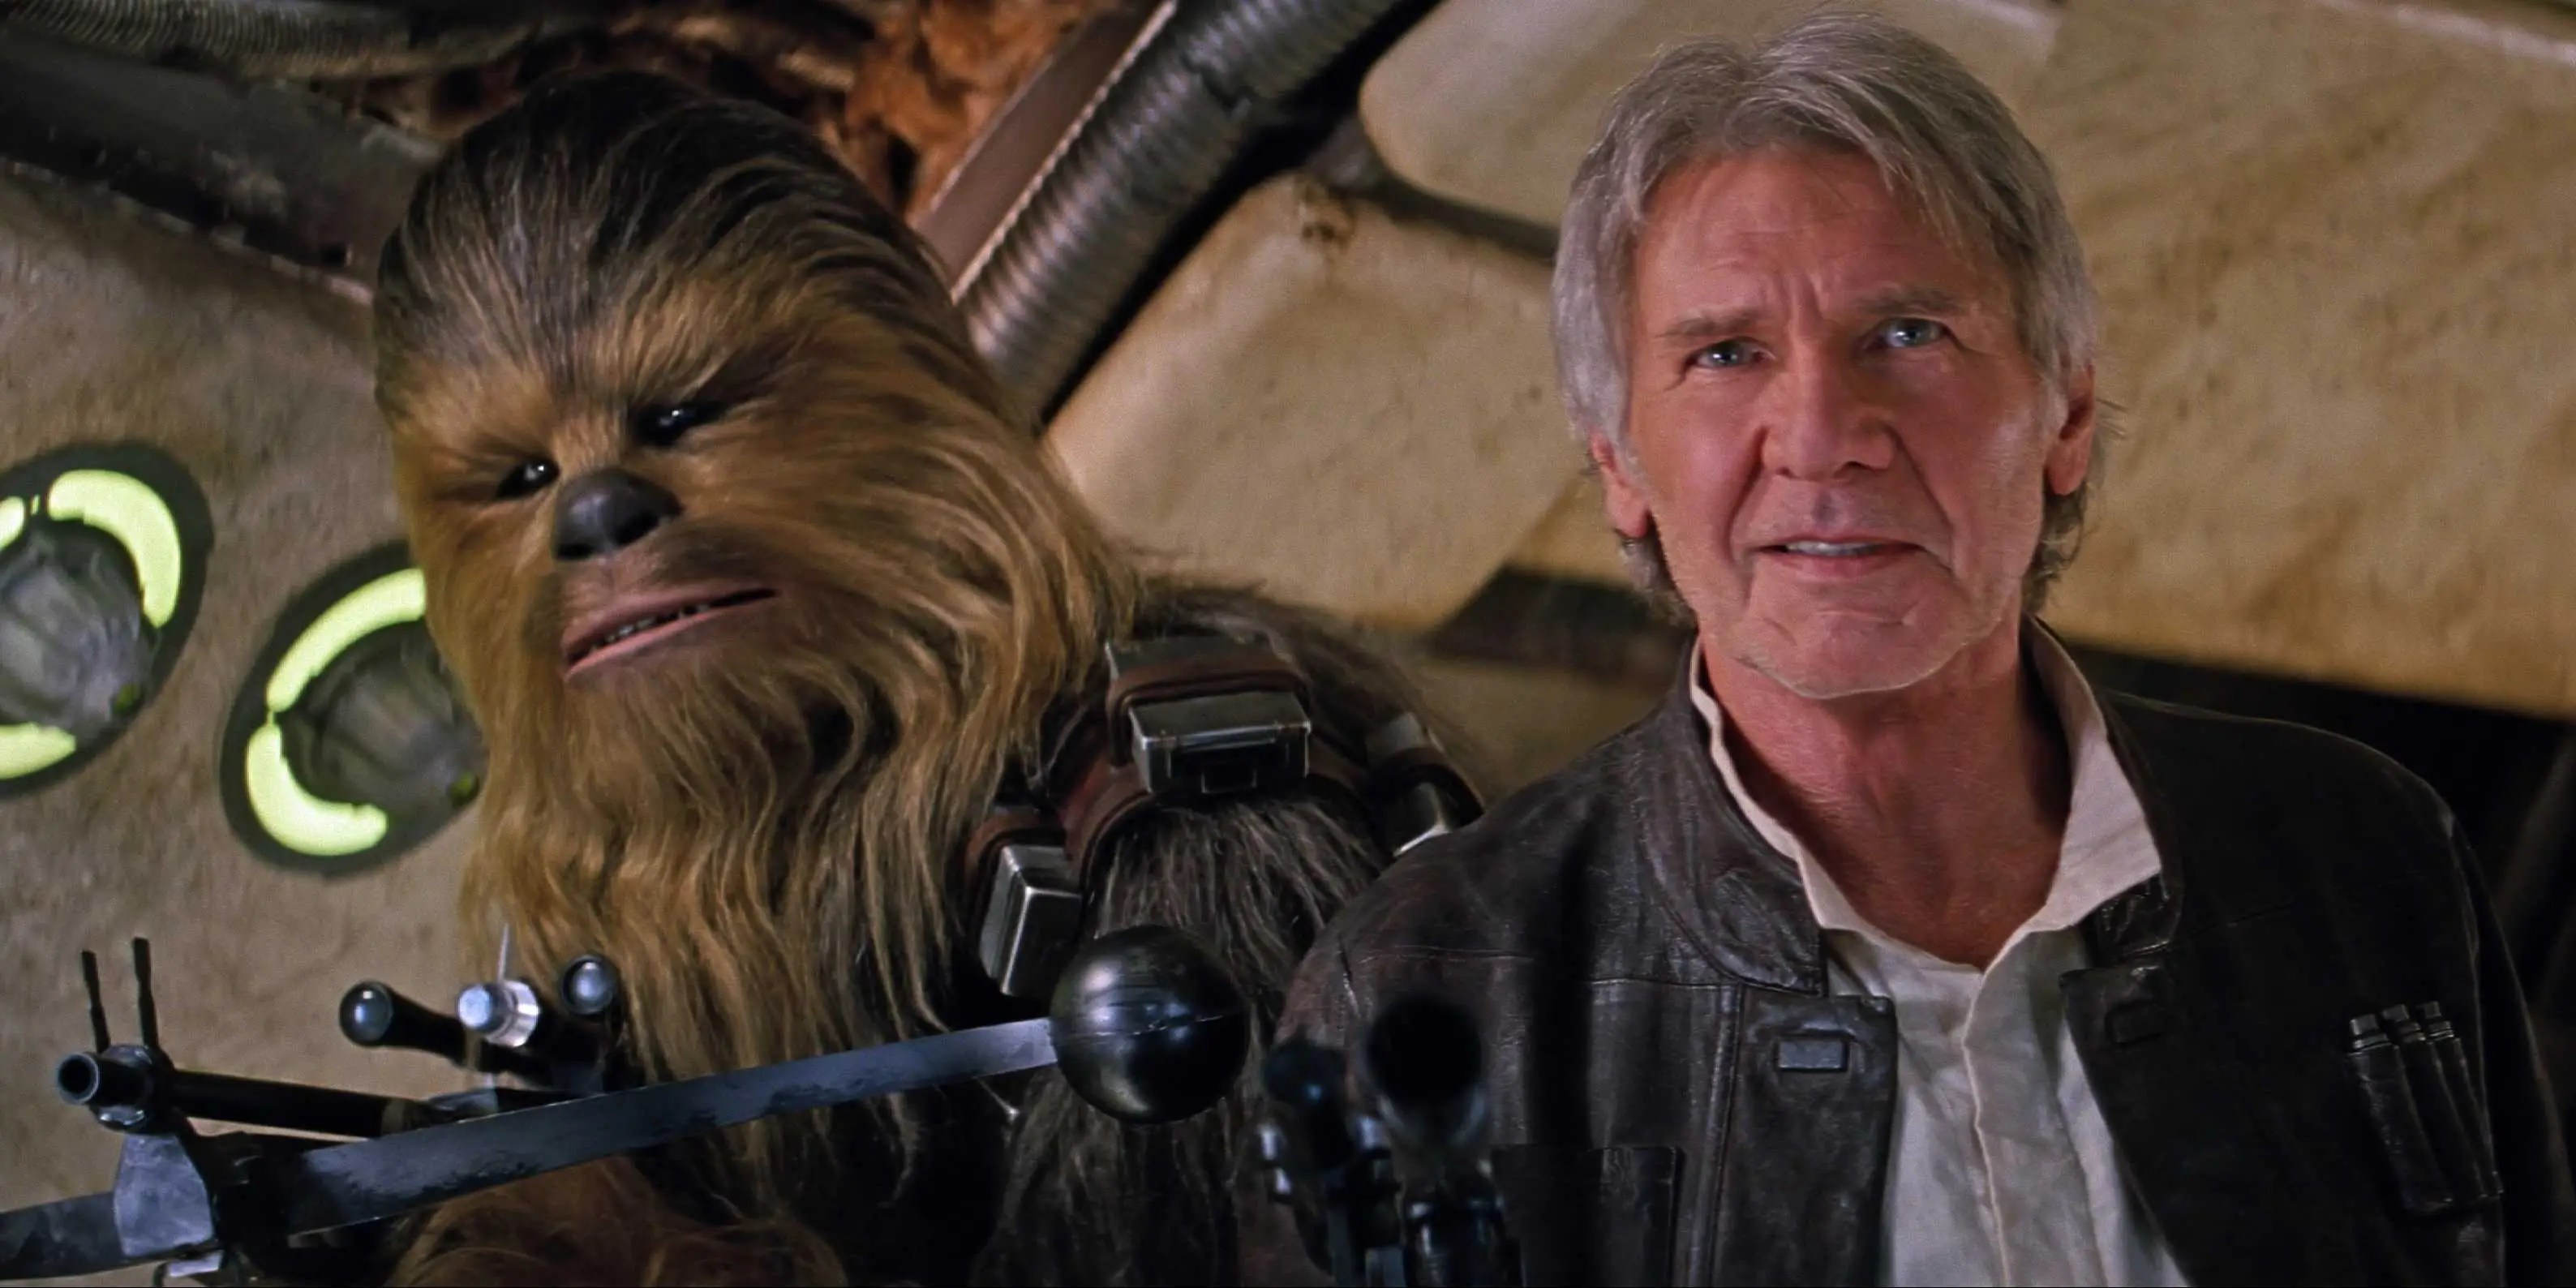 chewbacca harrison ford the force awakens